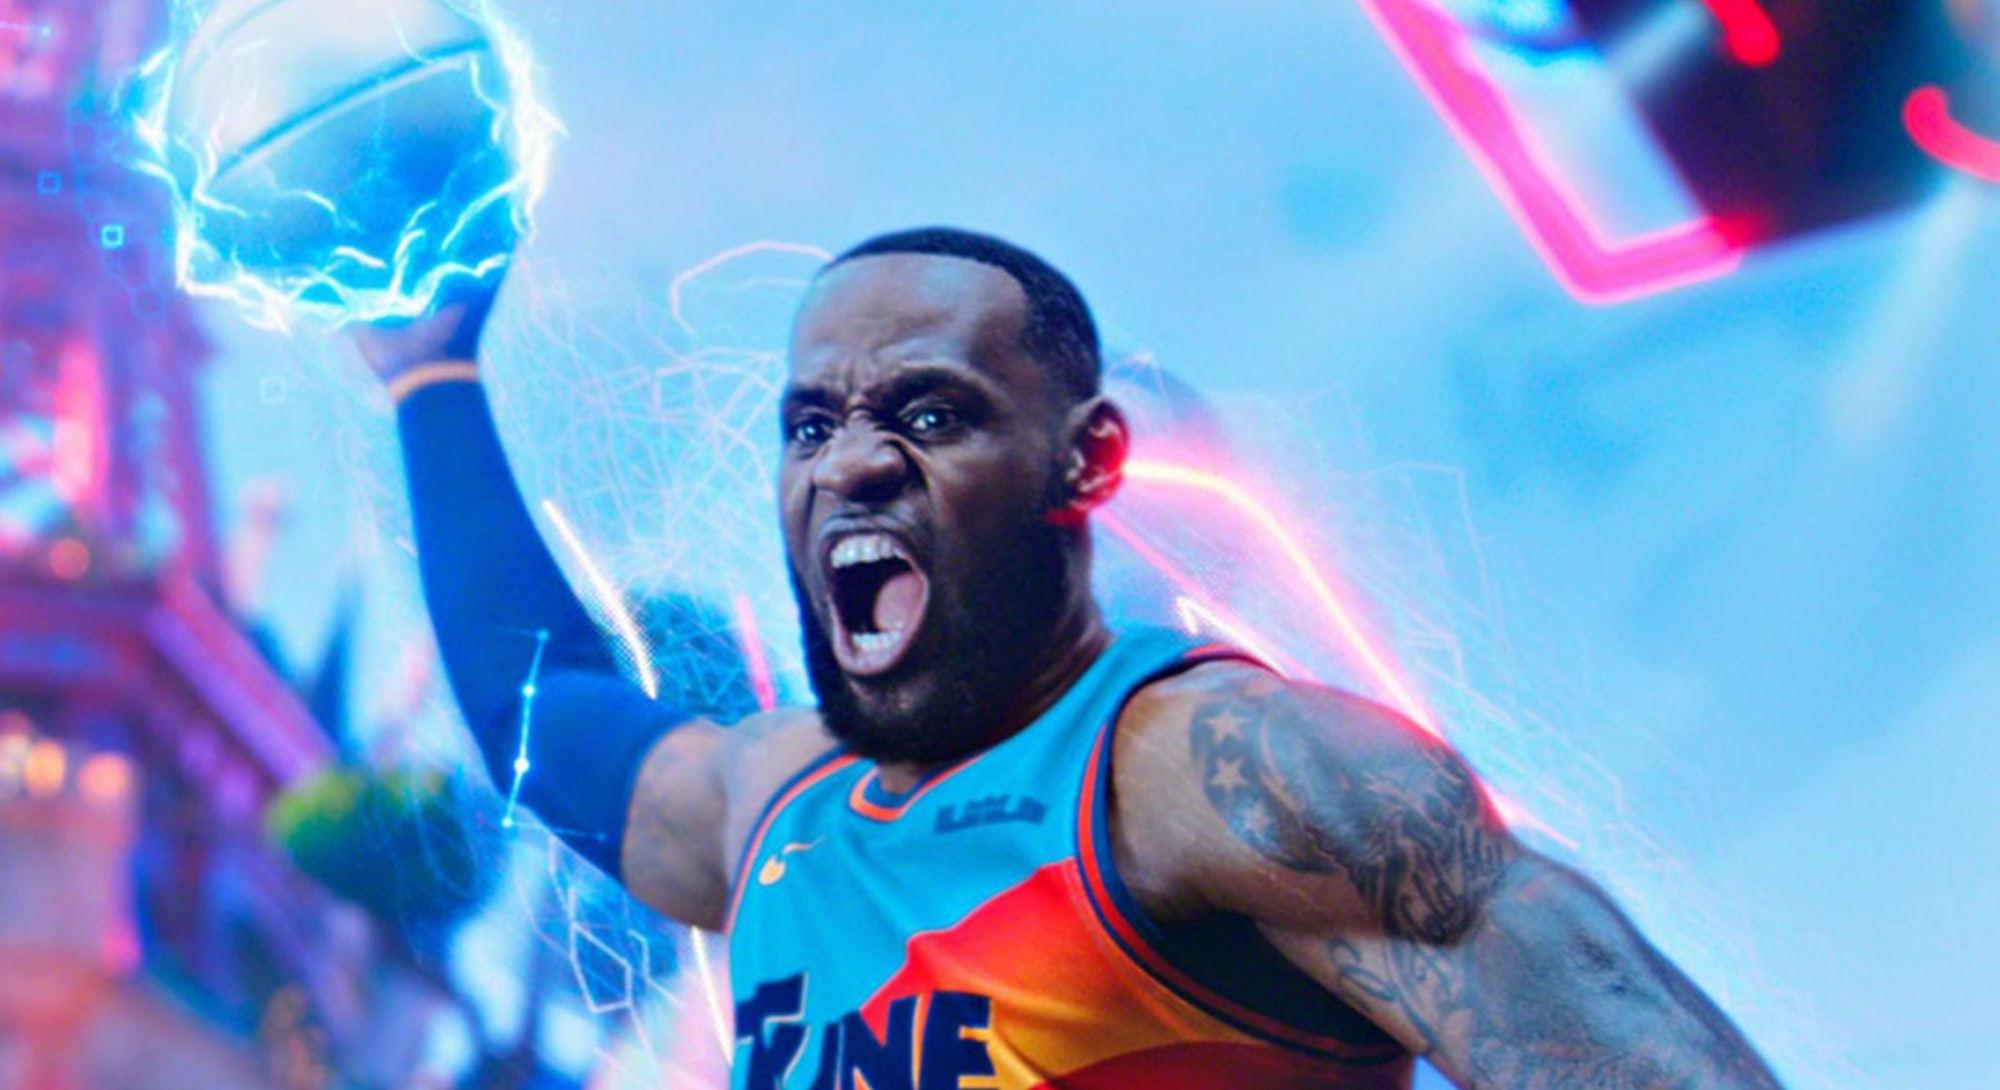 lebron james dunking basketball in space jam a new legacy